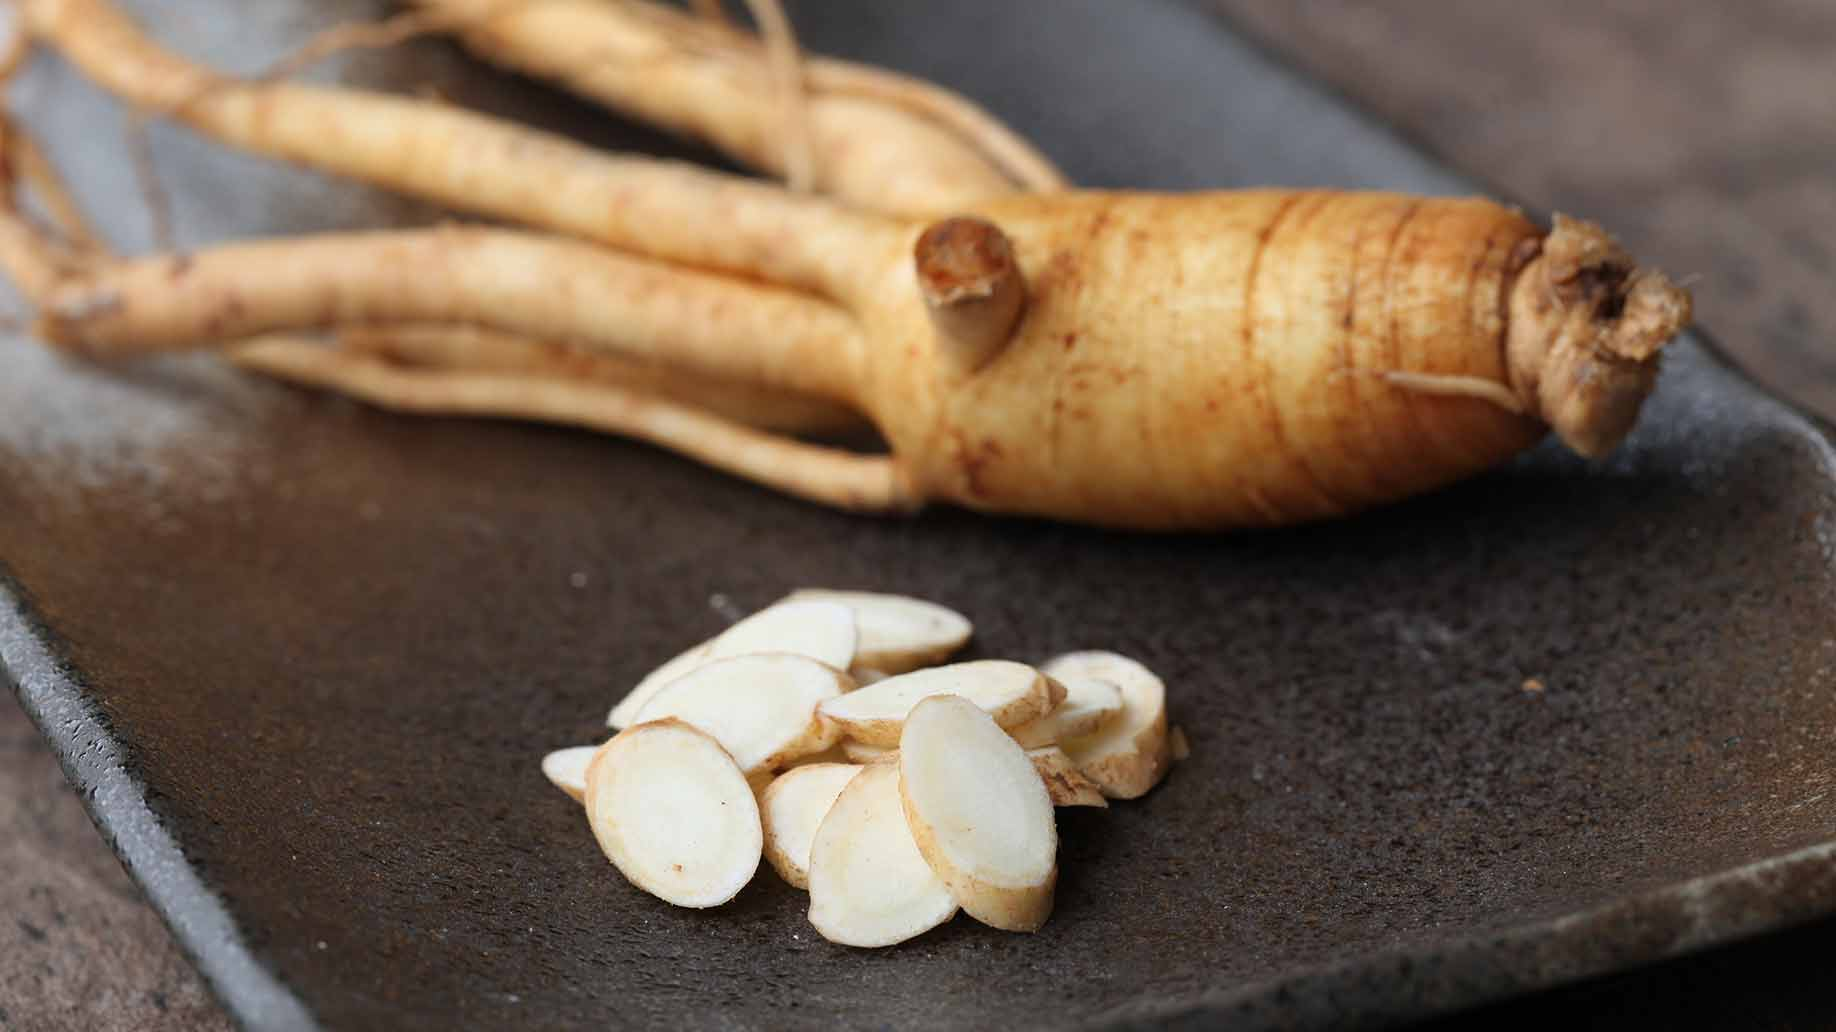 asian ginseng roots memory loss natural remedies